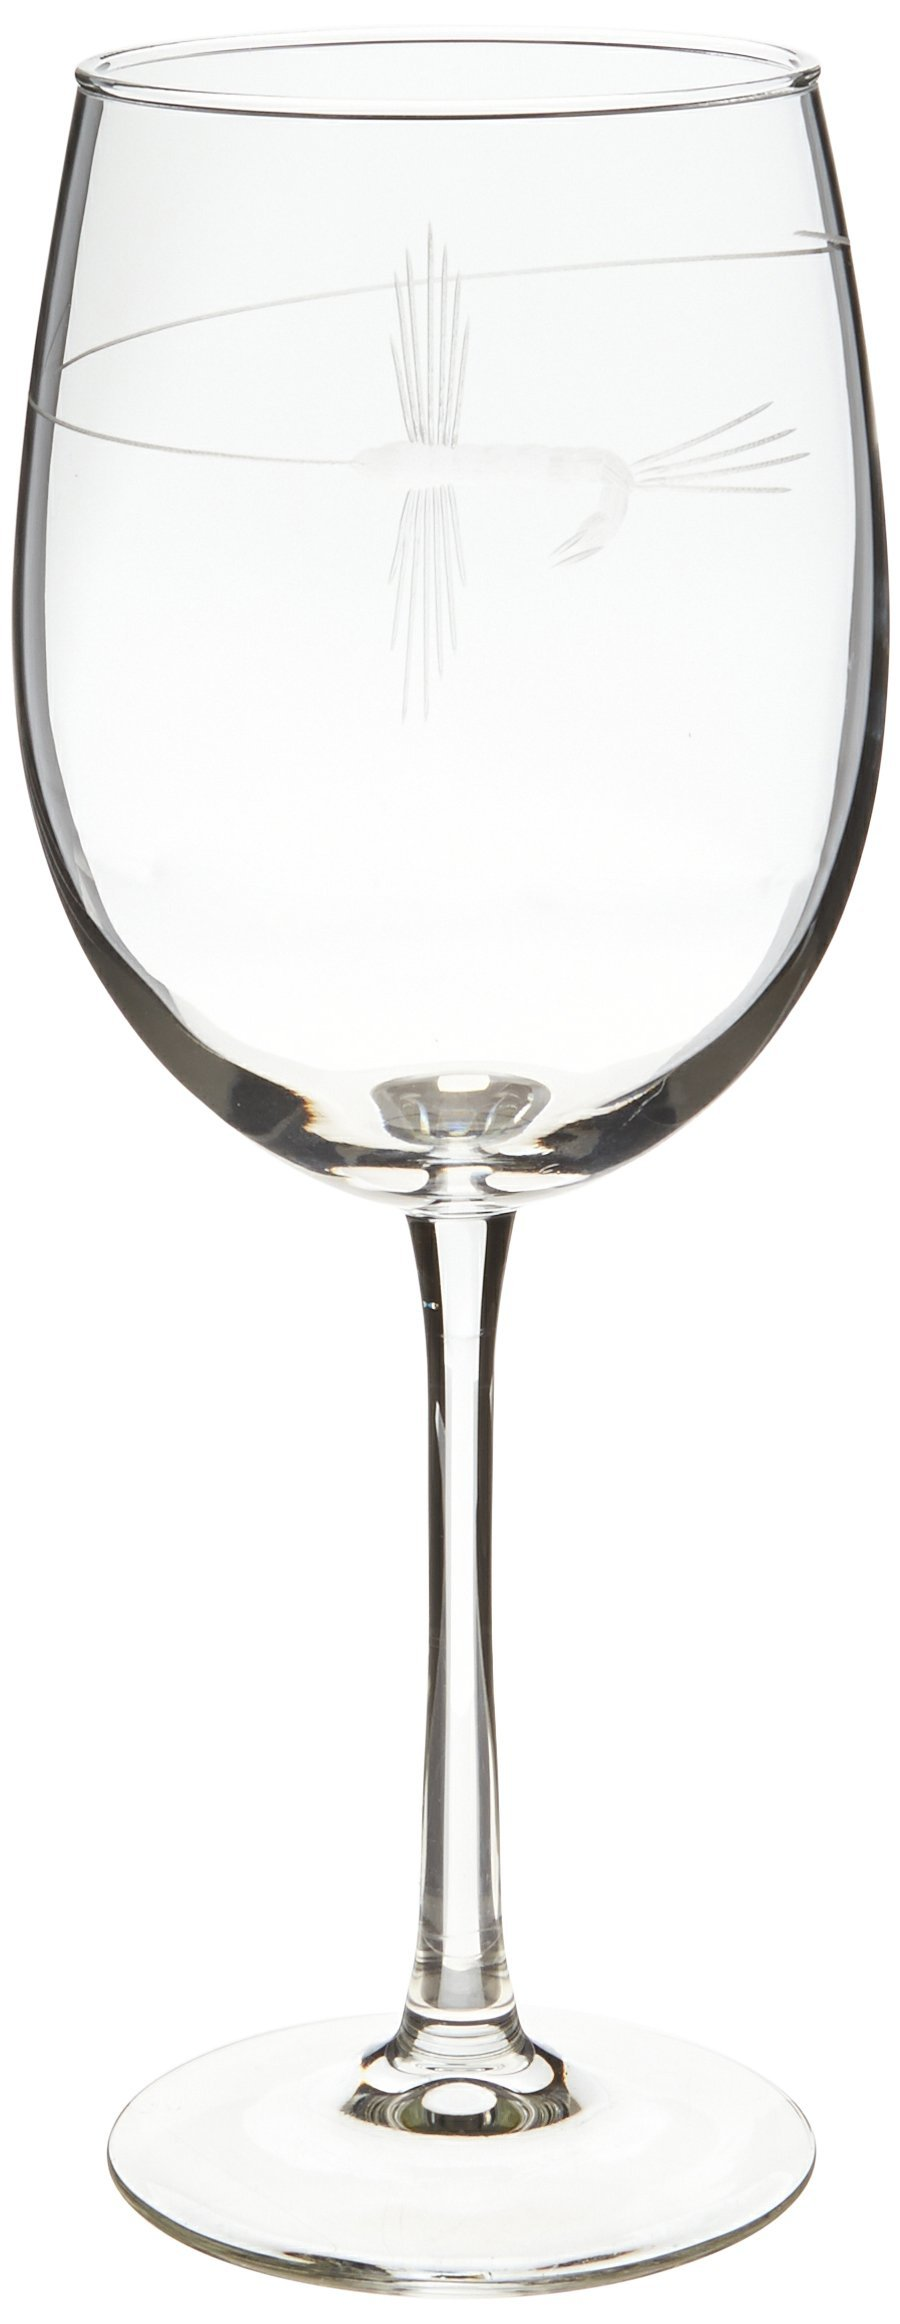 Rolf Glass Etched Fly Fishing All Purpose Large Wine Glass (Set of 4), 19 oz, Clear